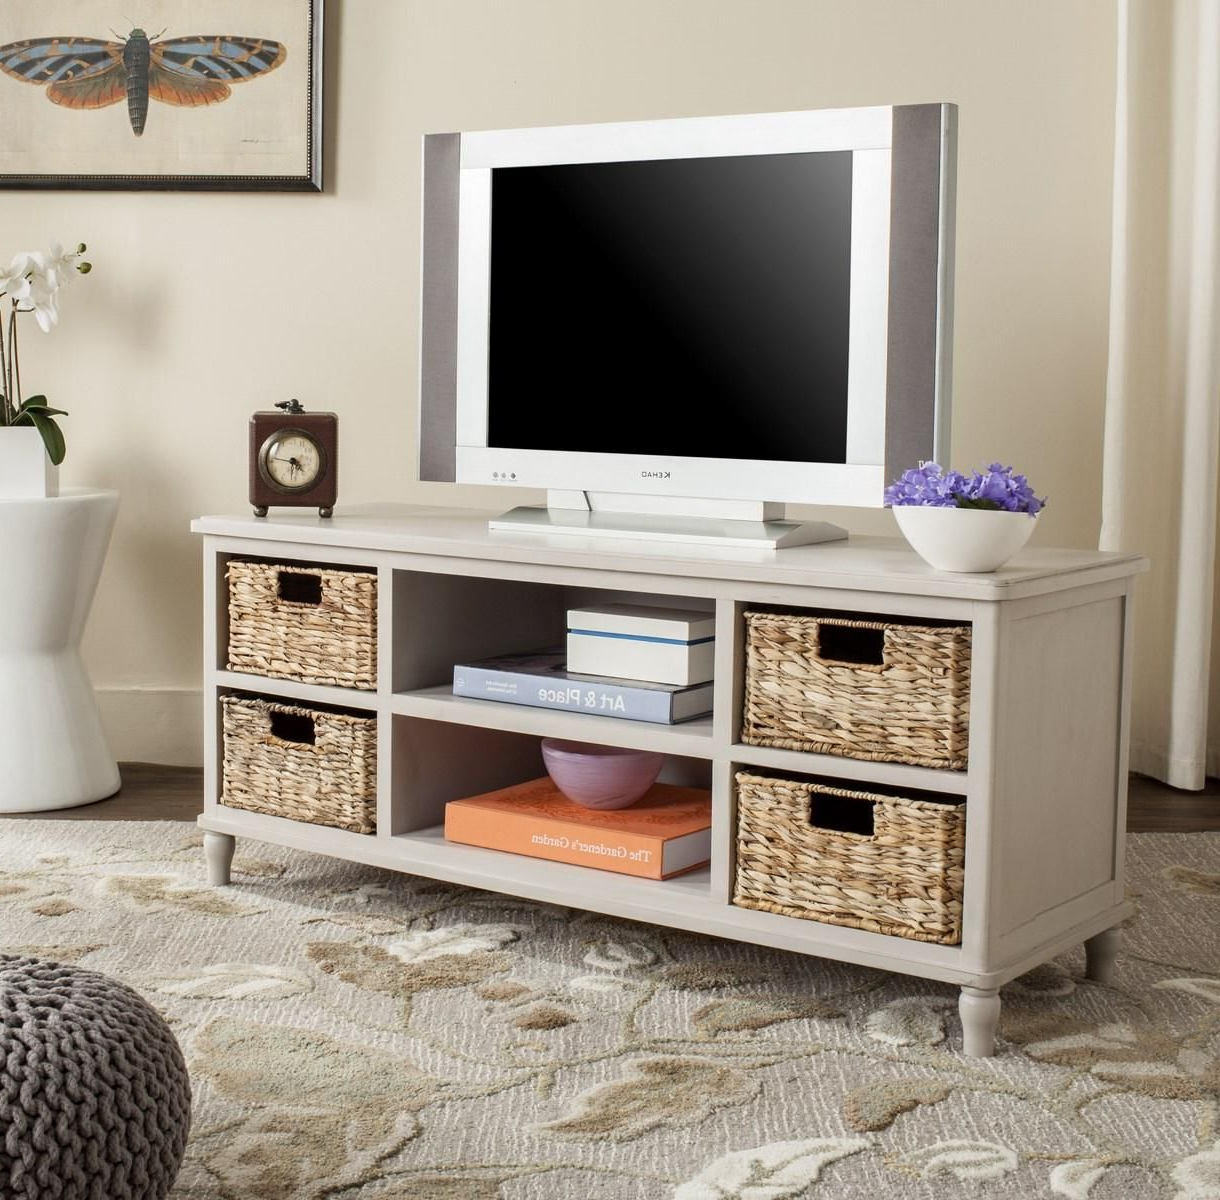 Amh5745D Tv Cabinet – Furniture  Home Decor   Entertainment Throughout Natural Cane Media Console Tables (View 2 of 20)